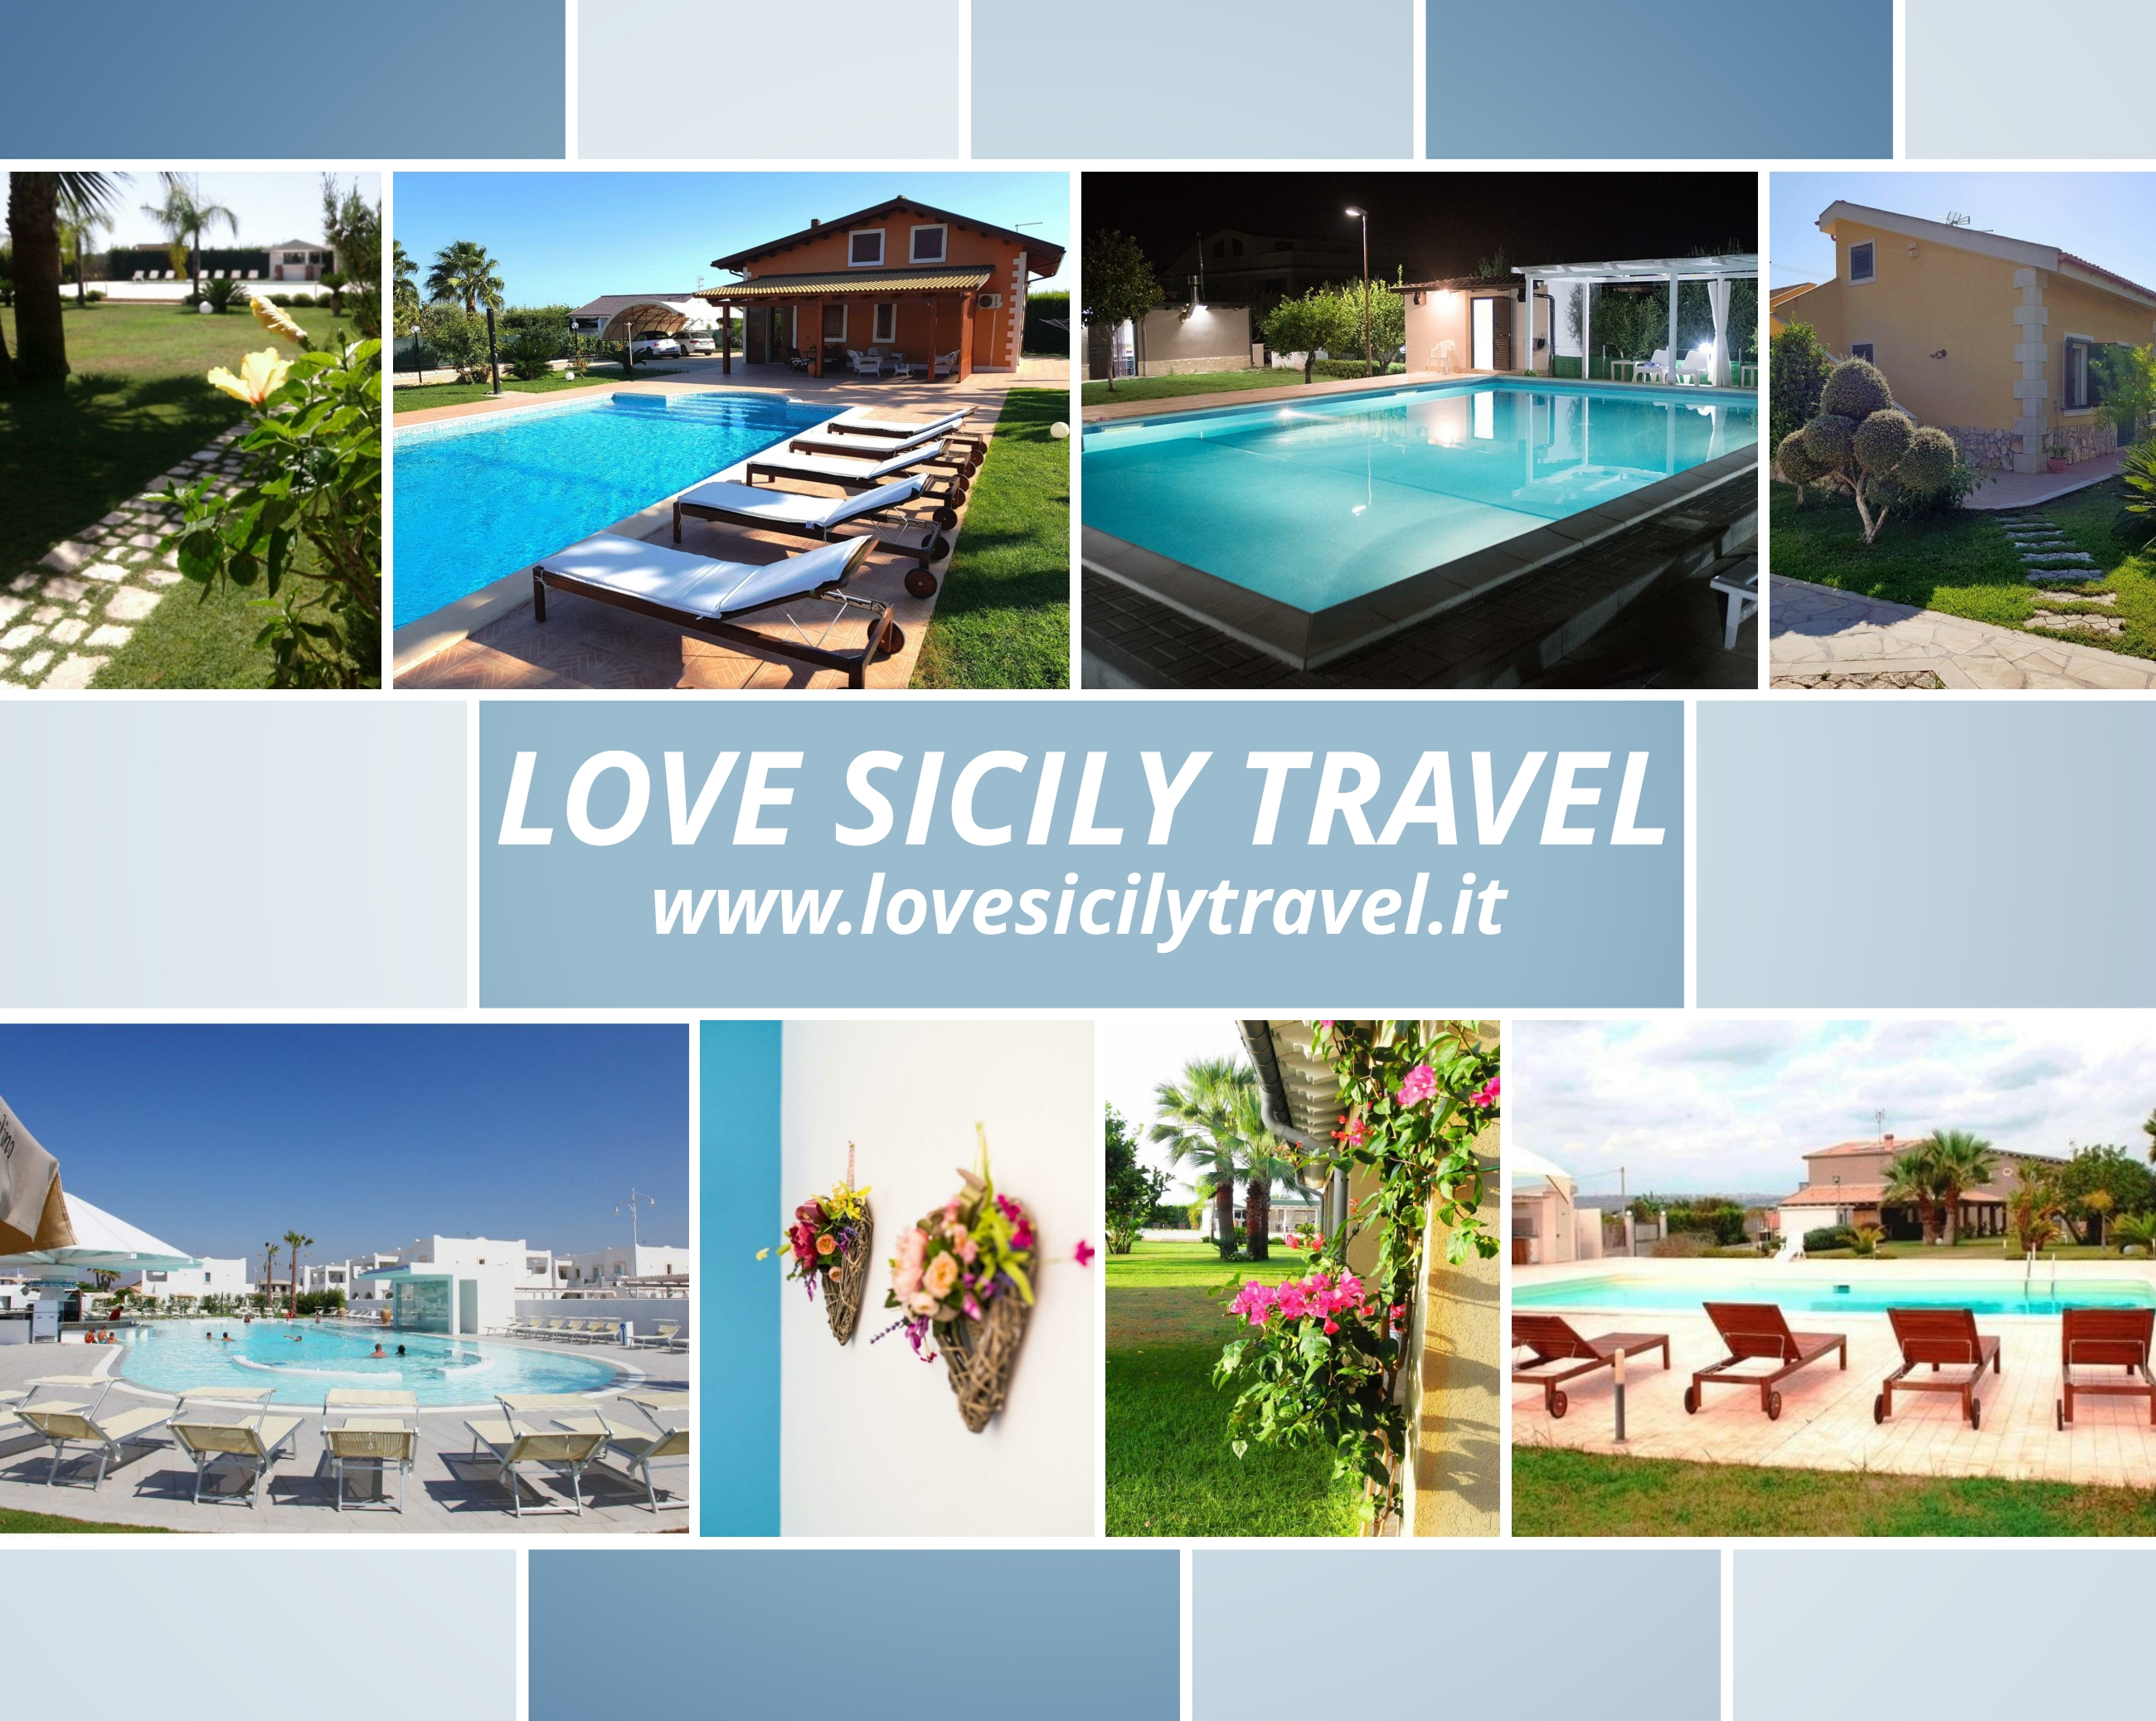 Love Sicily Travel